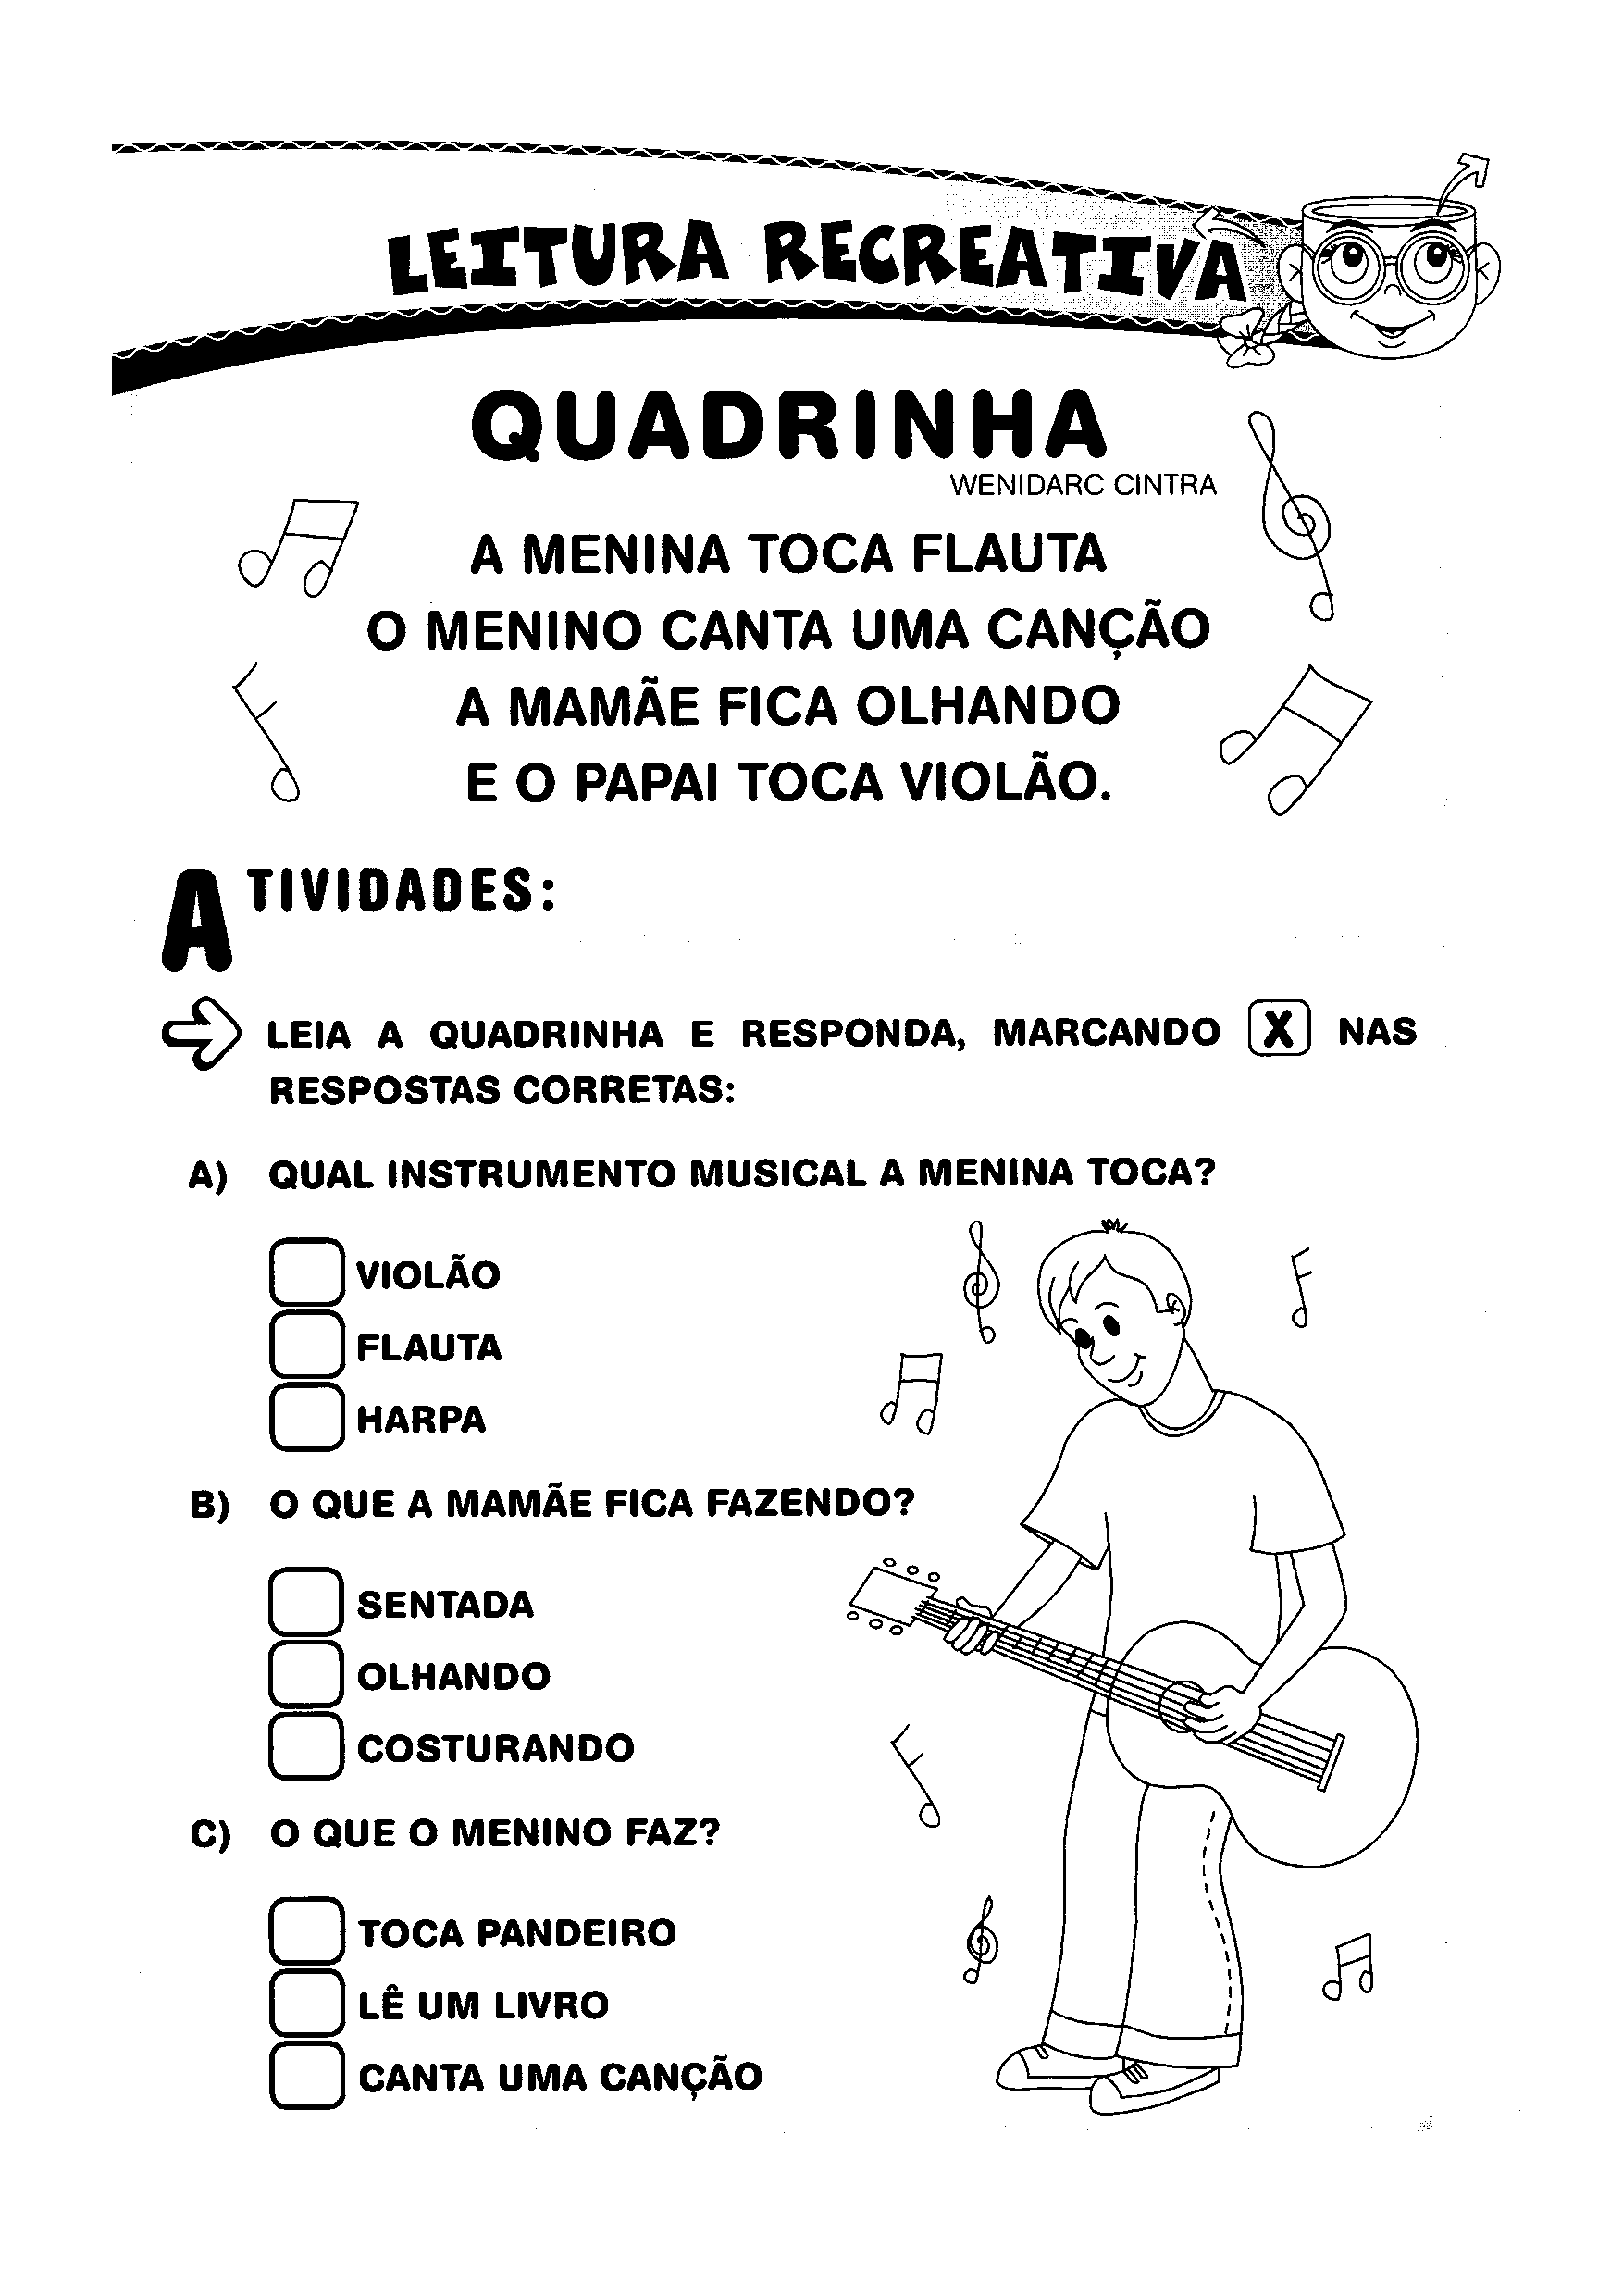 Leitura Recreativa - Quadrilha